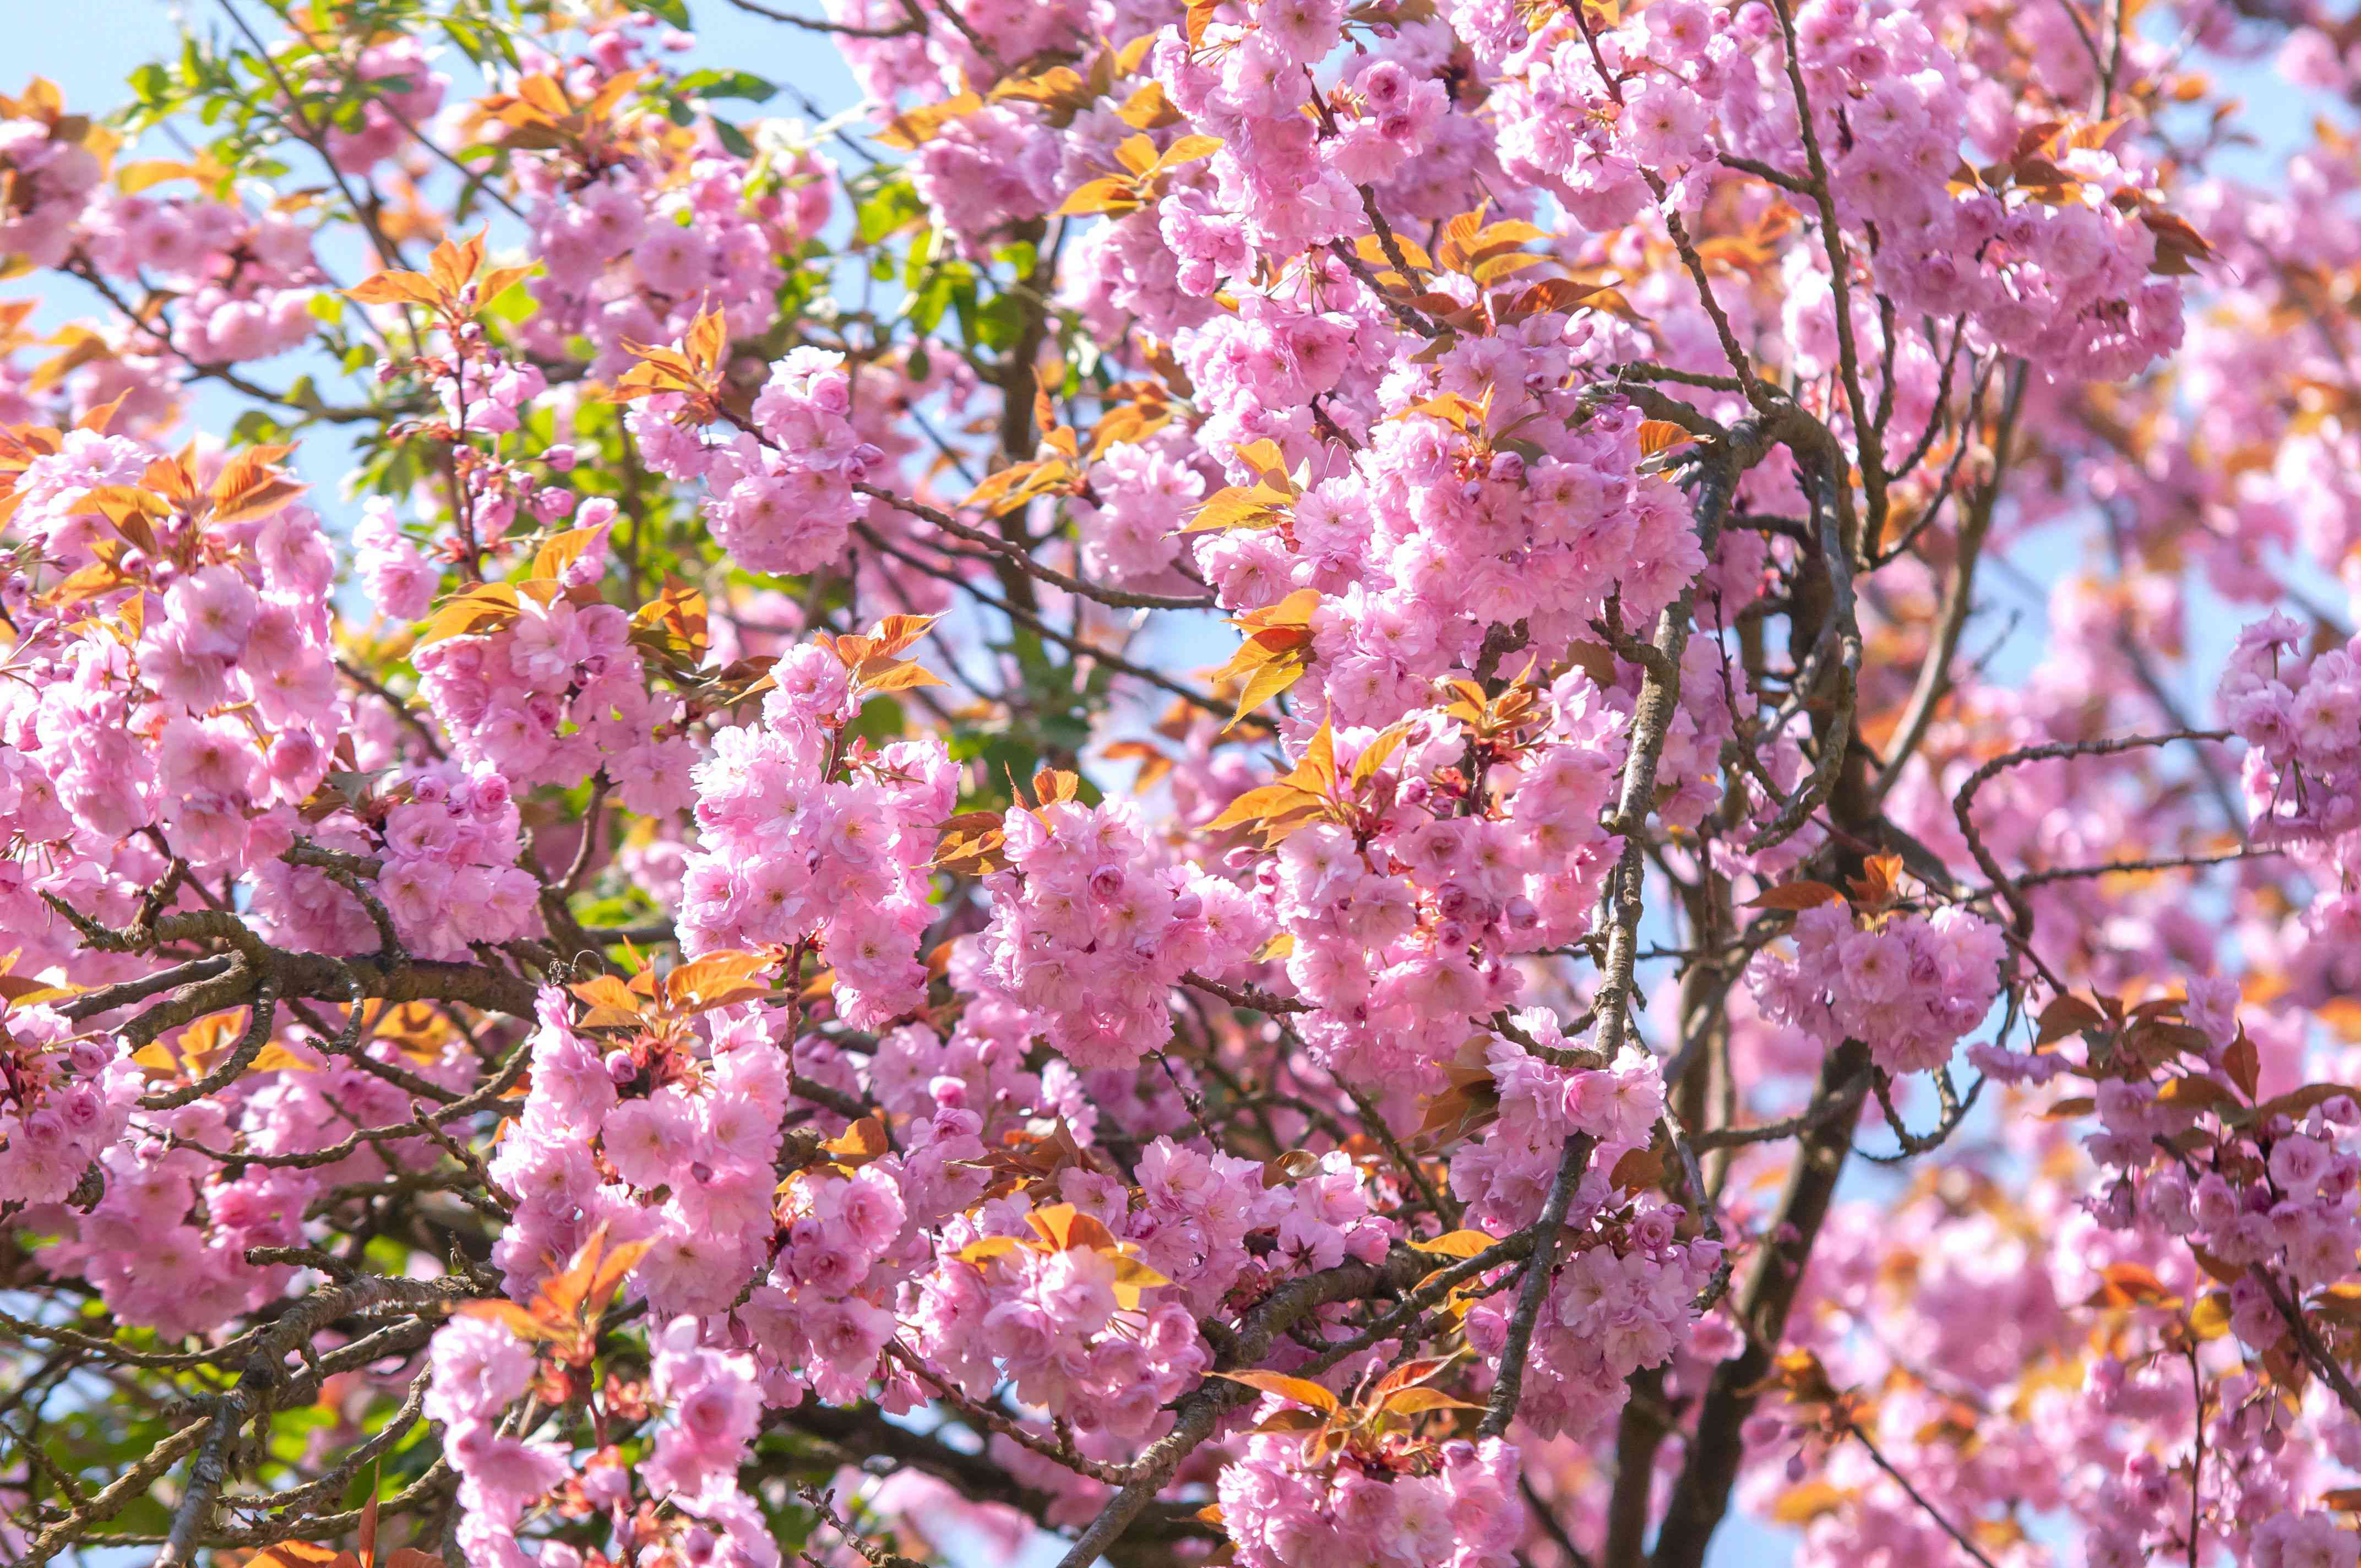 Japanese flowering cherry tree branches with pink blossom clusters with yellow leaves